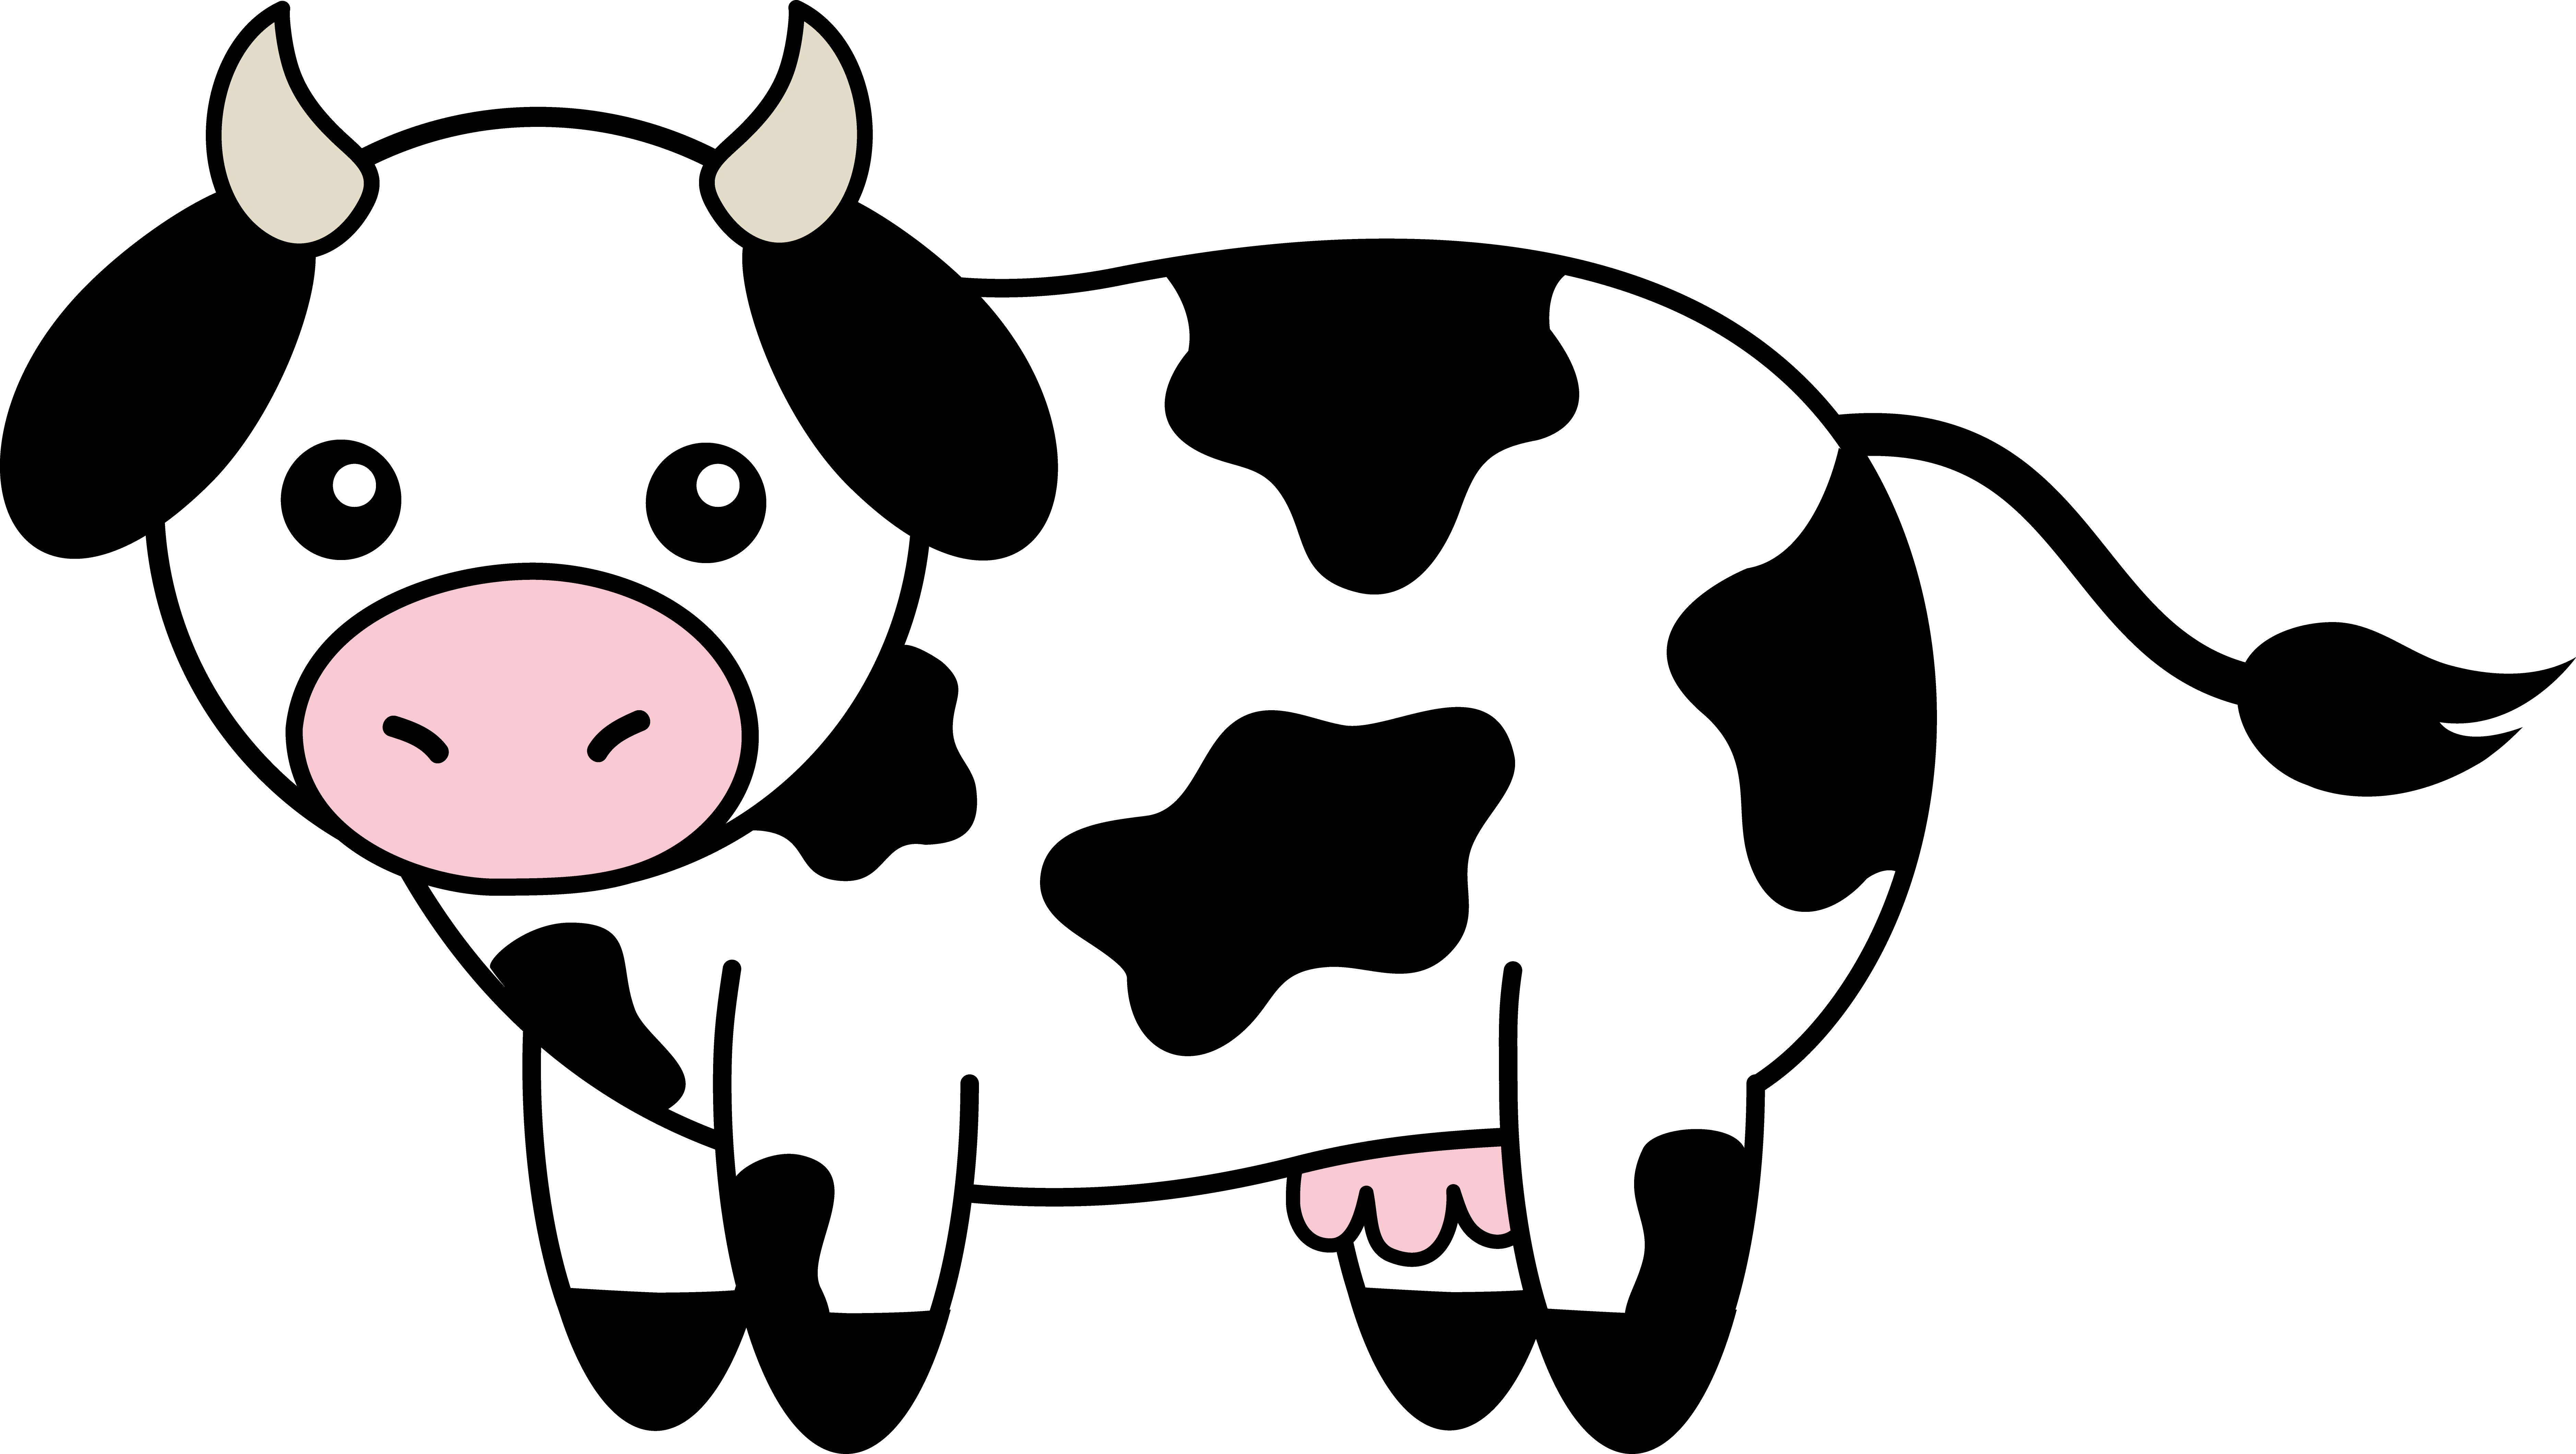 Free Baby Cow Cliparts, Download Free Clip Art, Free Clip.